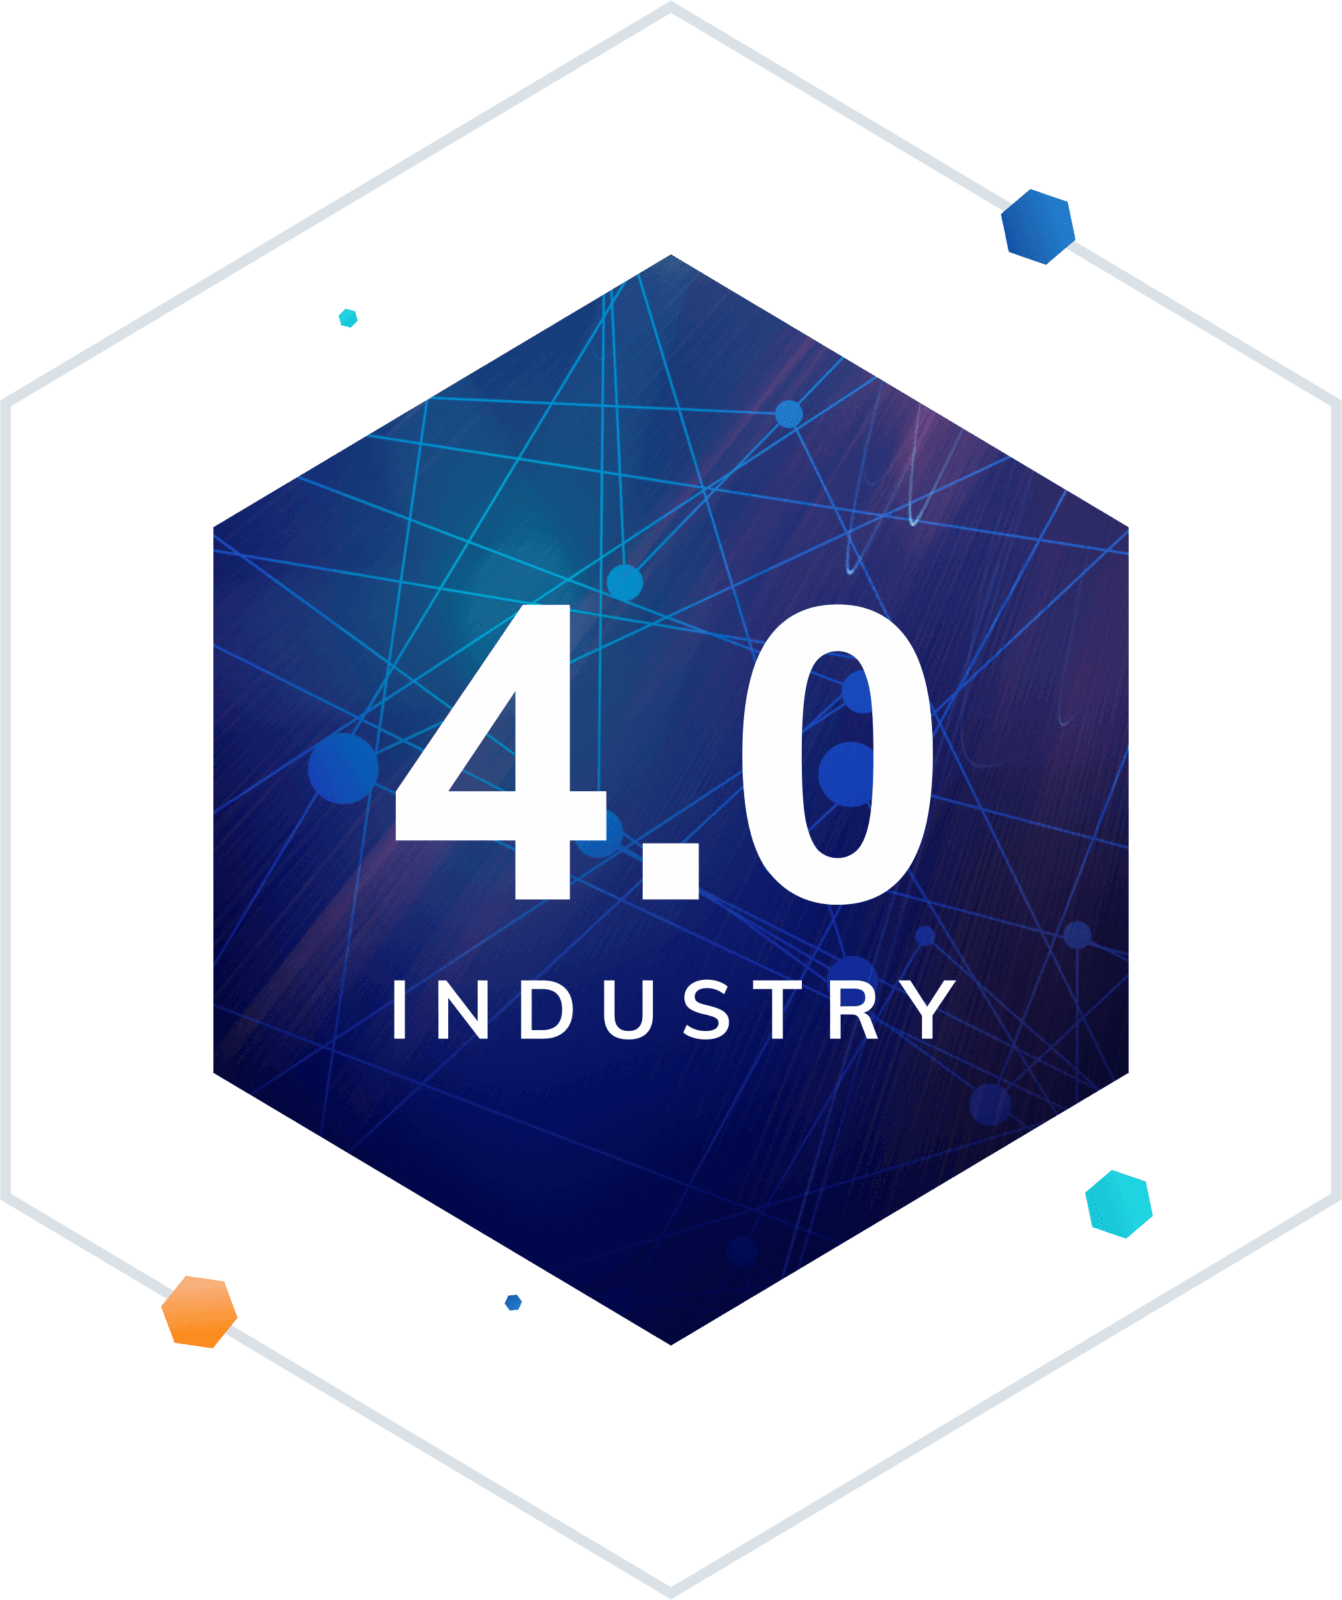 dciX iNDUSTRY 4.0